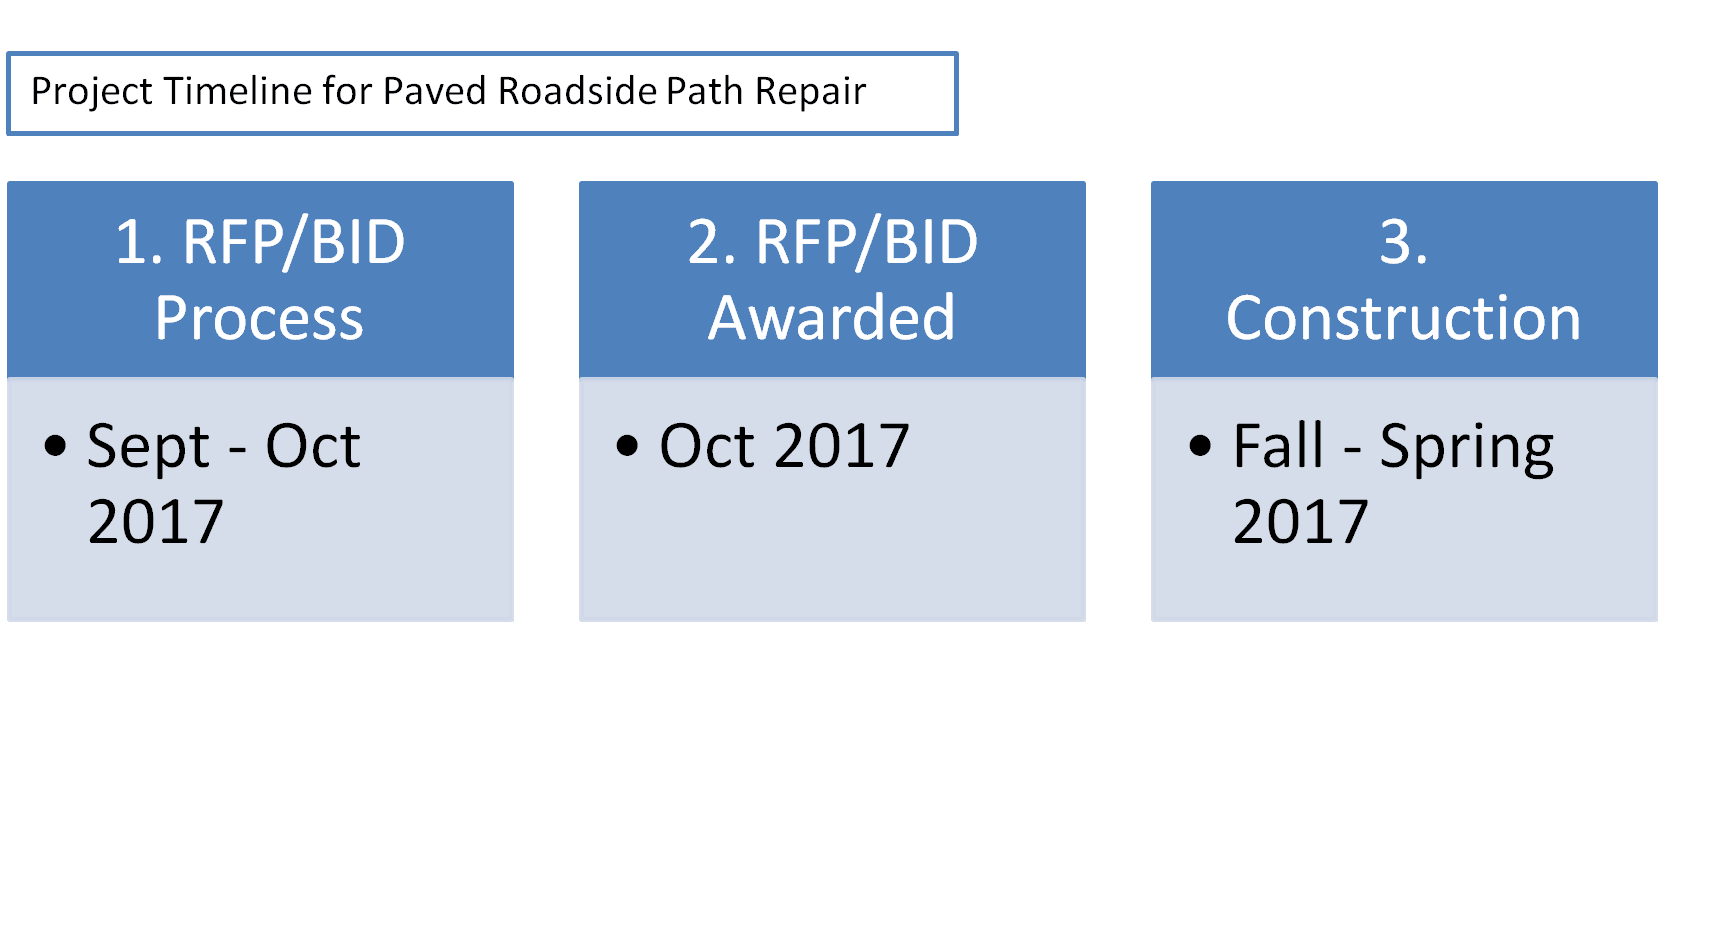 time line road side path repair